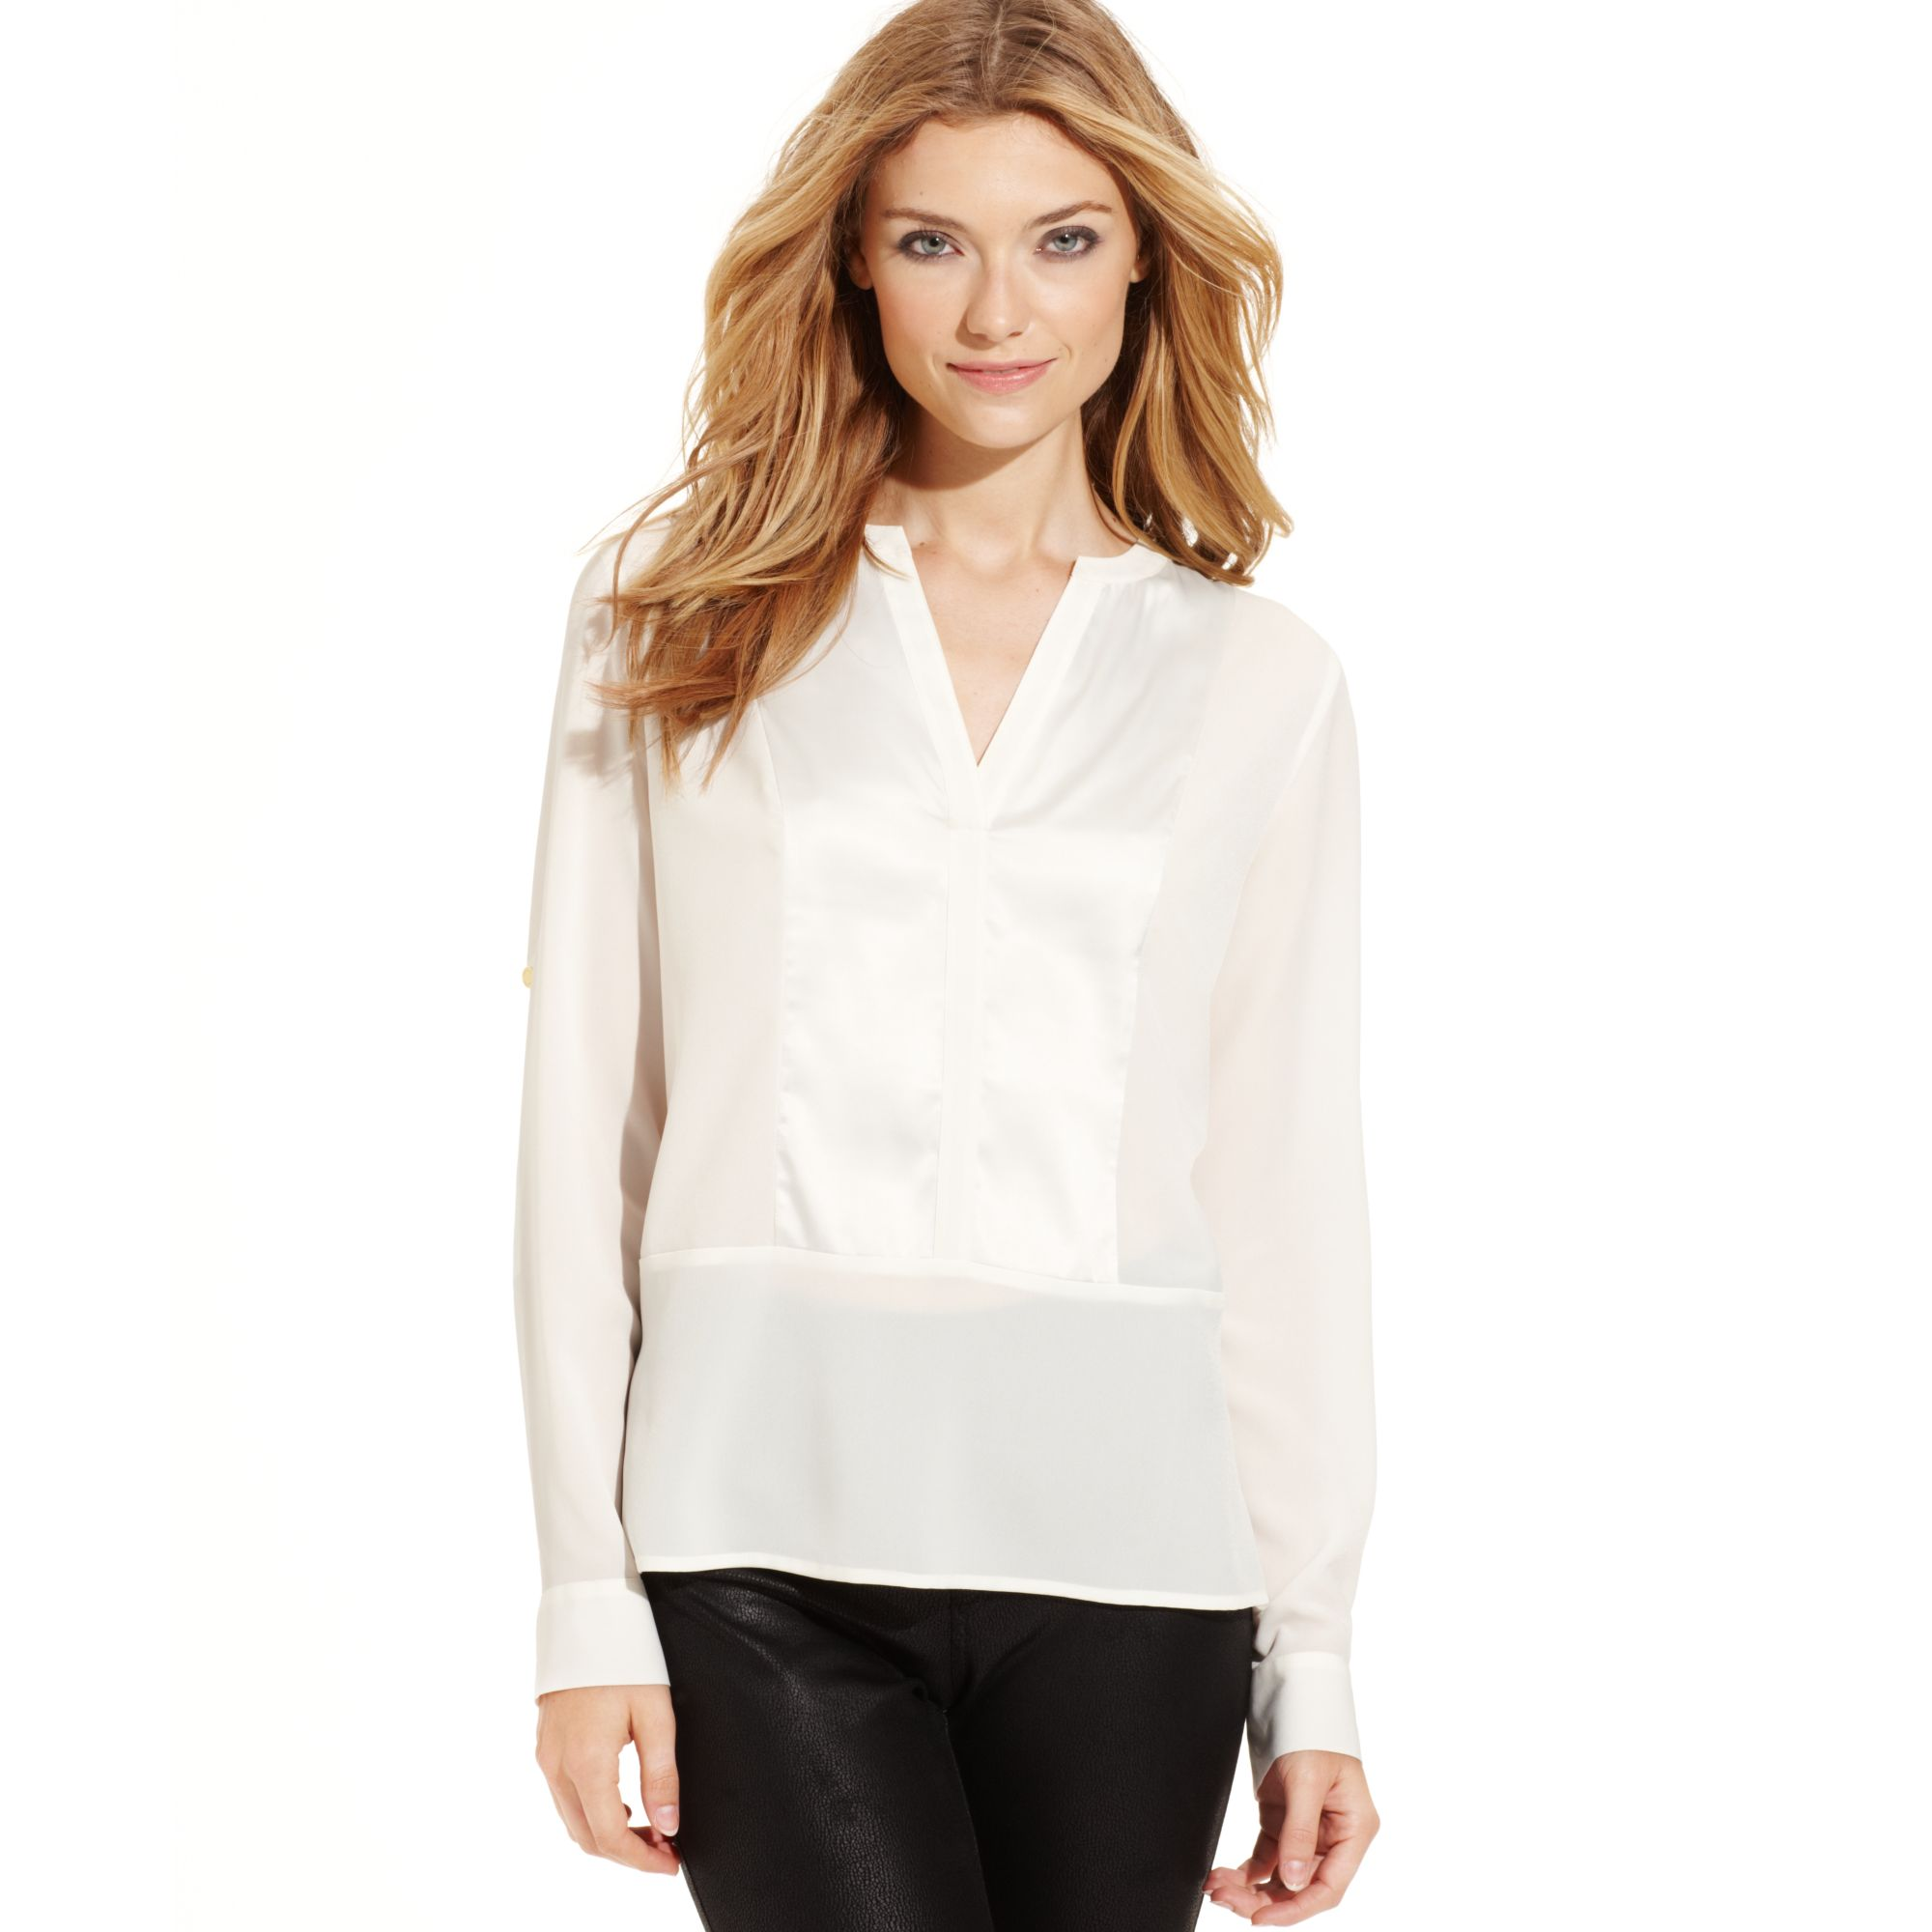 White Satin Blouse Long Sleeve 102